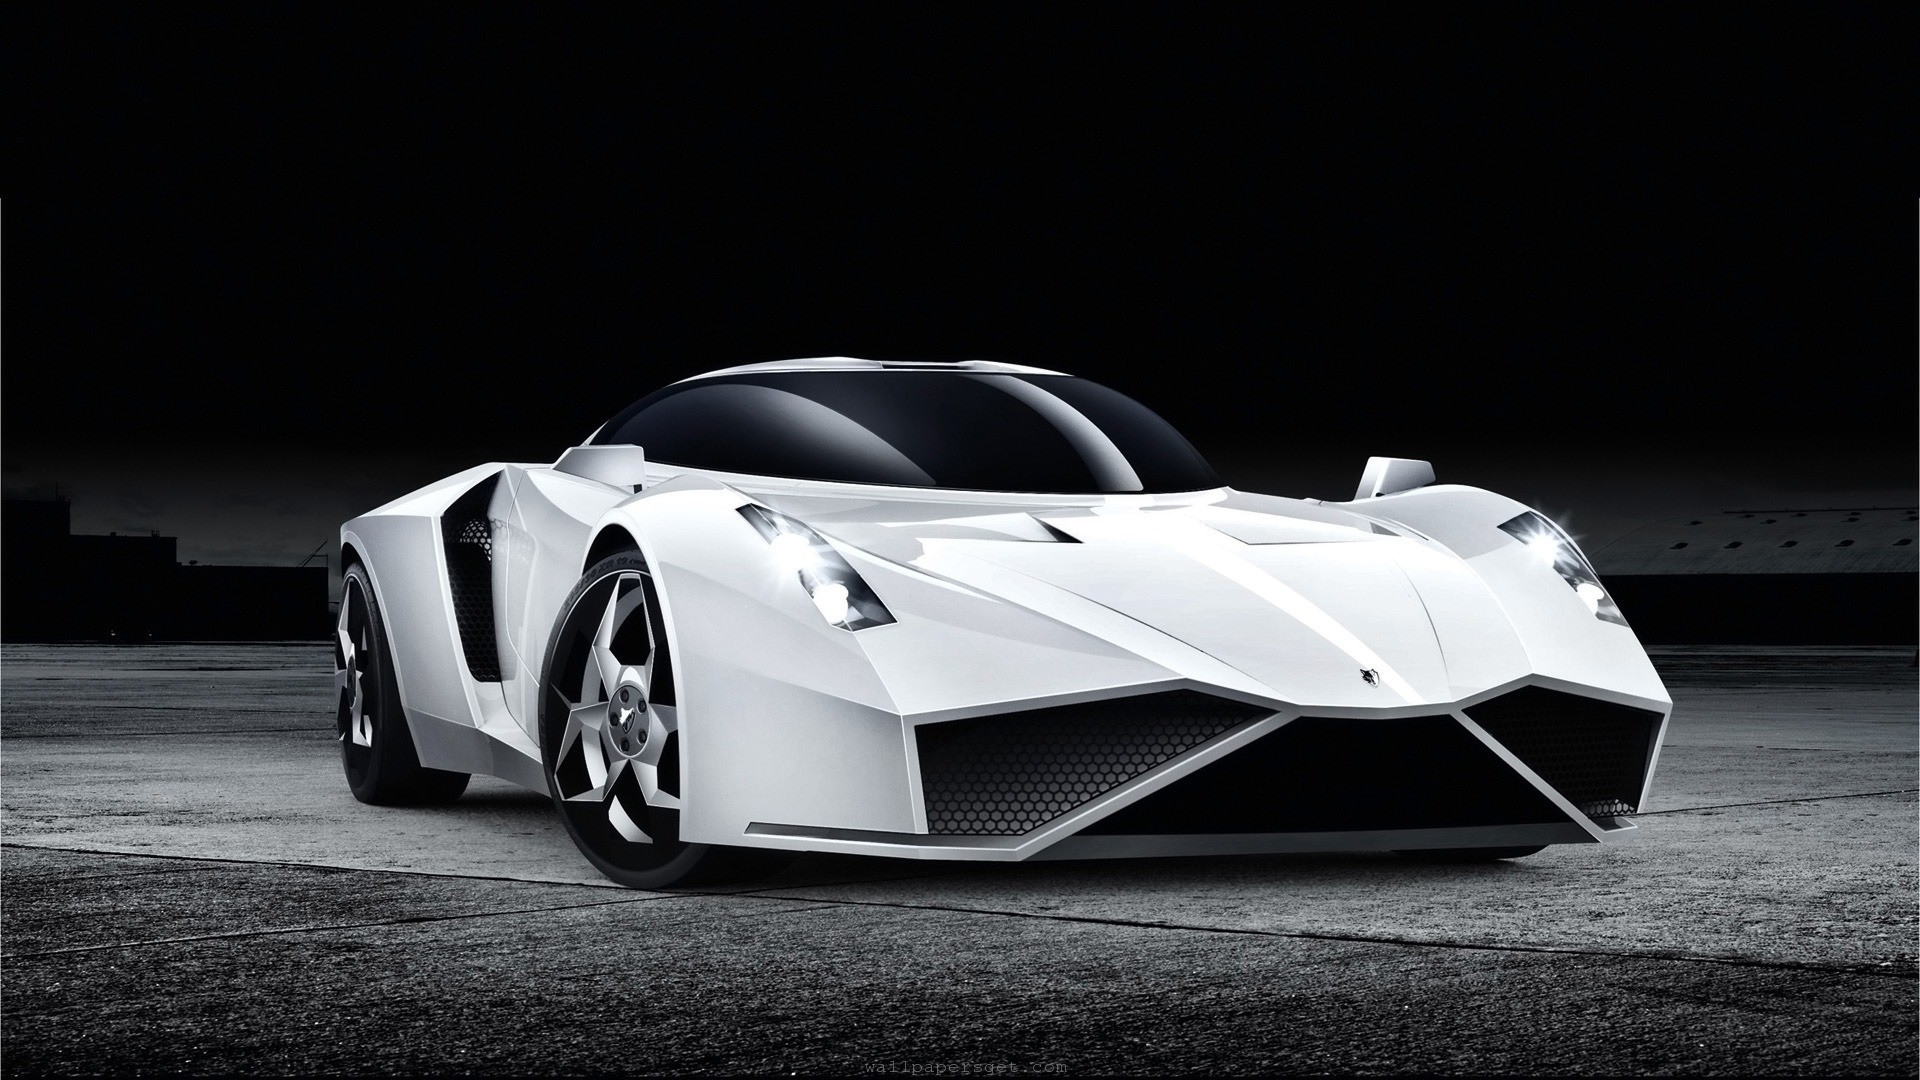 1920x1200 Awesome Car Wallpapers Hd 1080p